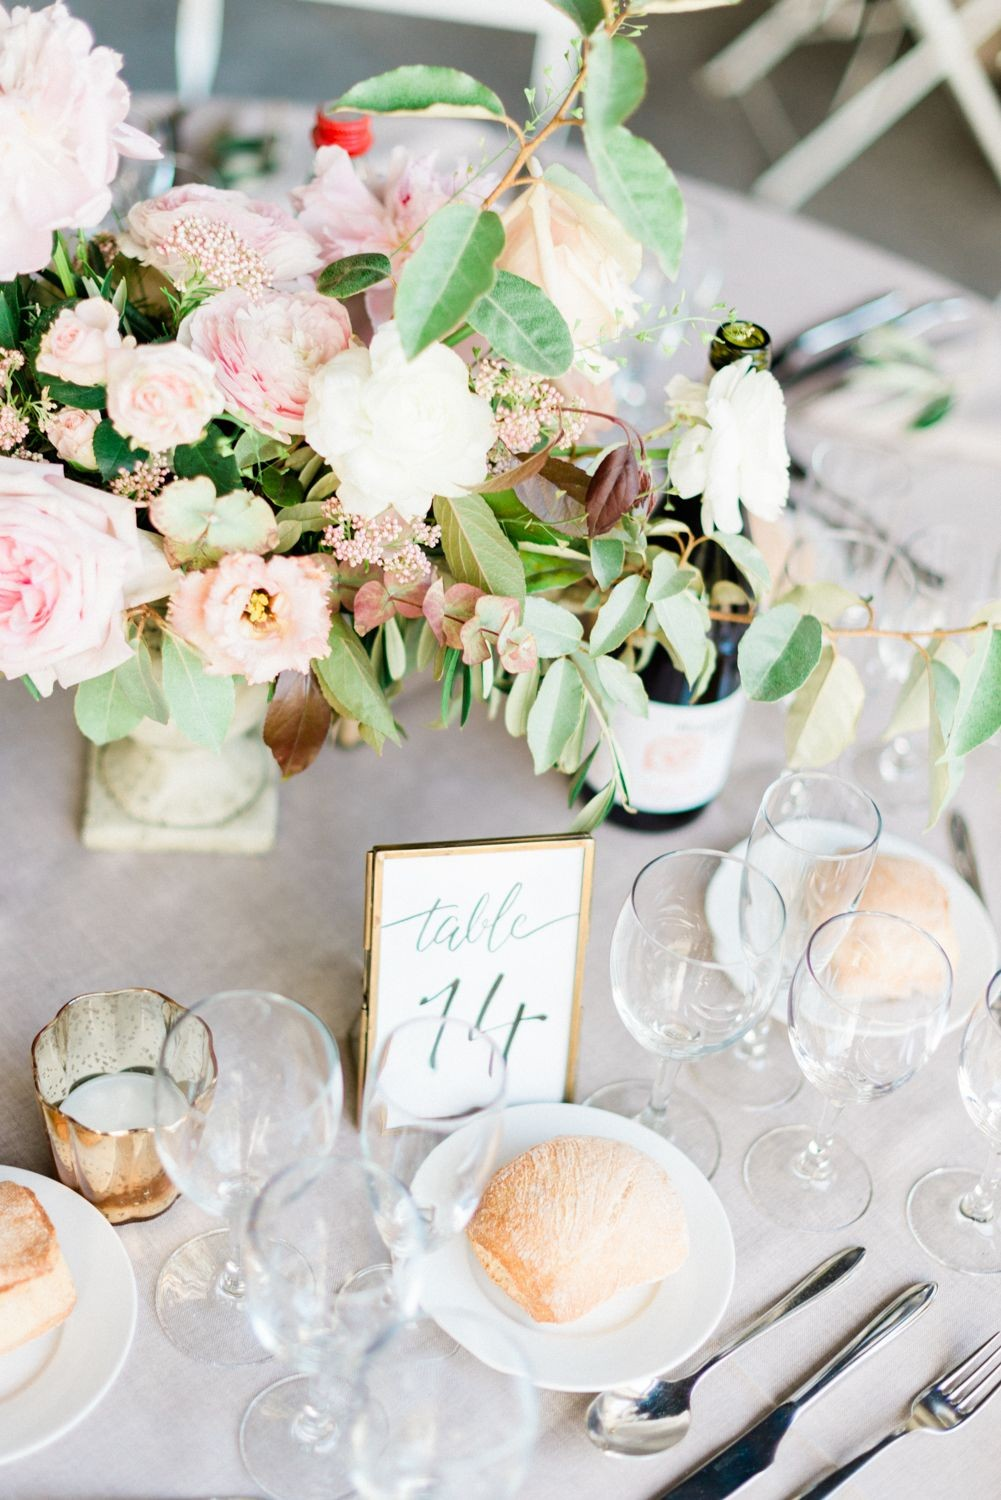 Flower bouquet and wine glasses on dinner table